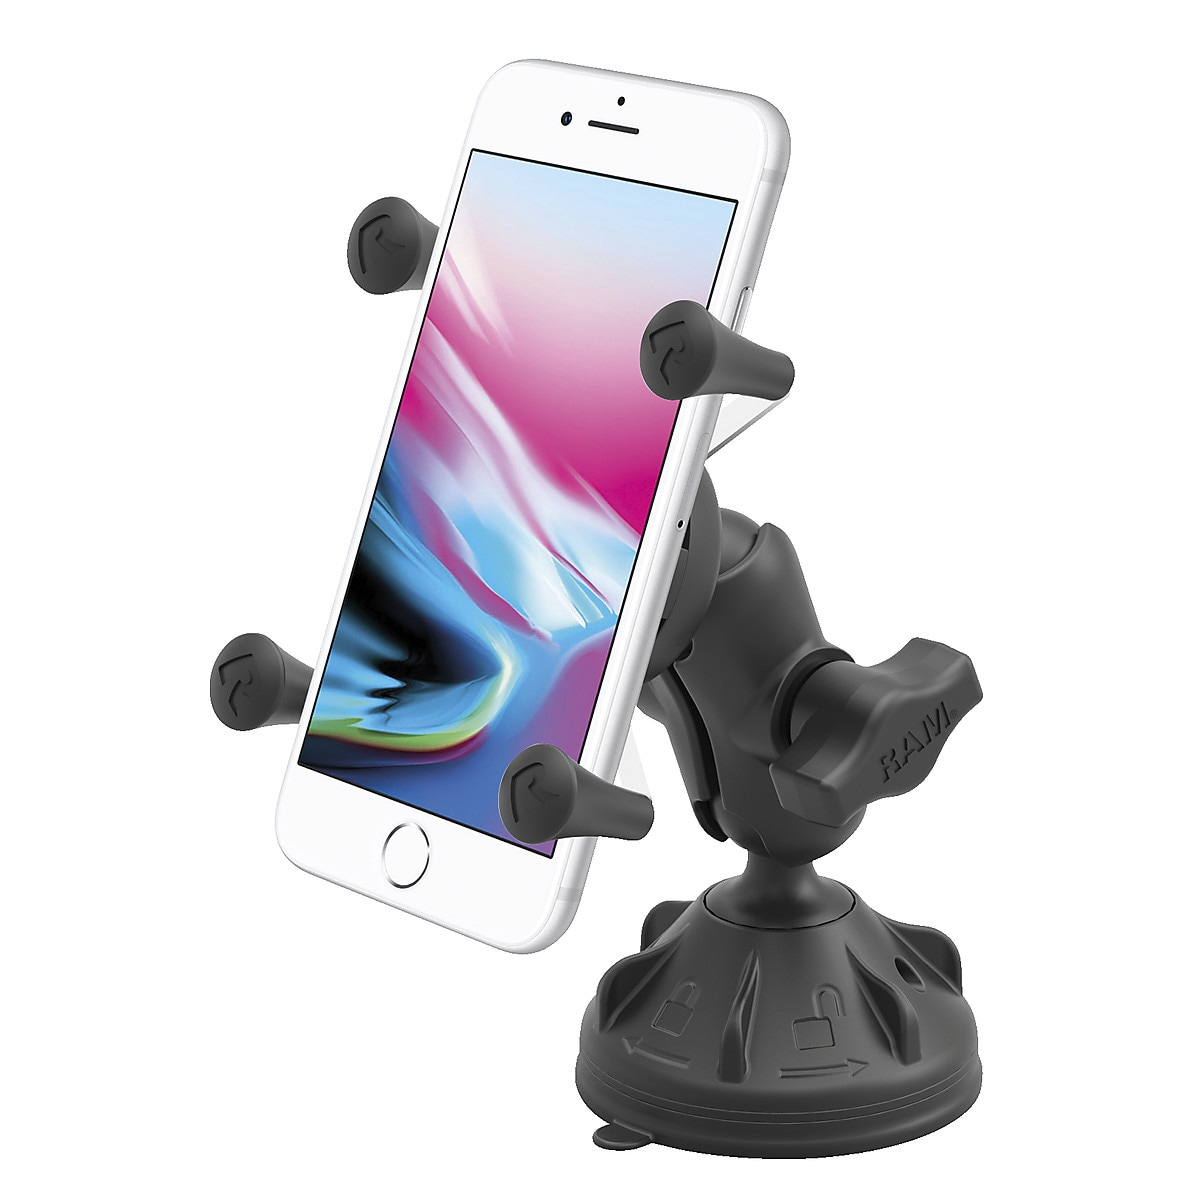 RAM Smartphone Holder with Suction Cup Base